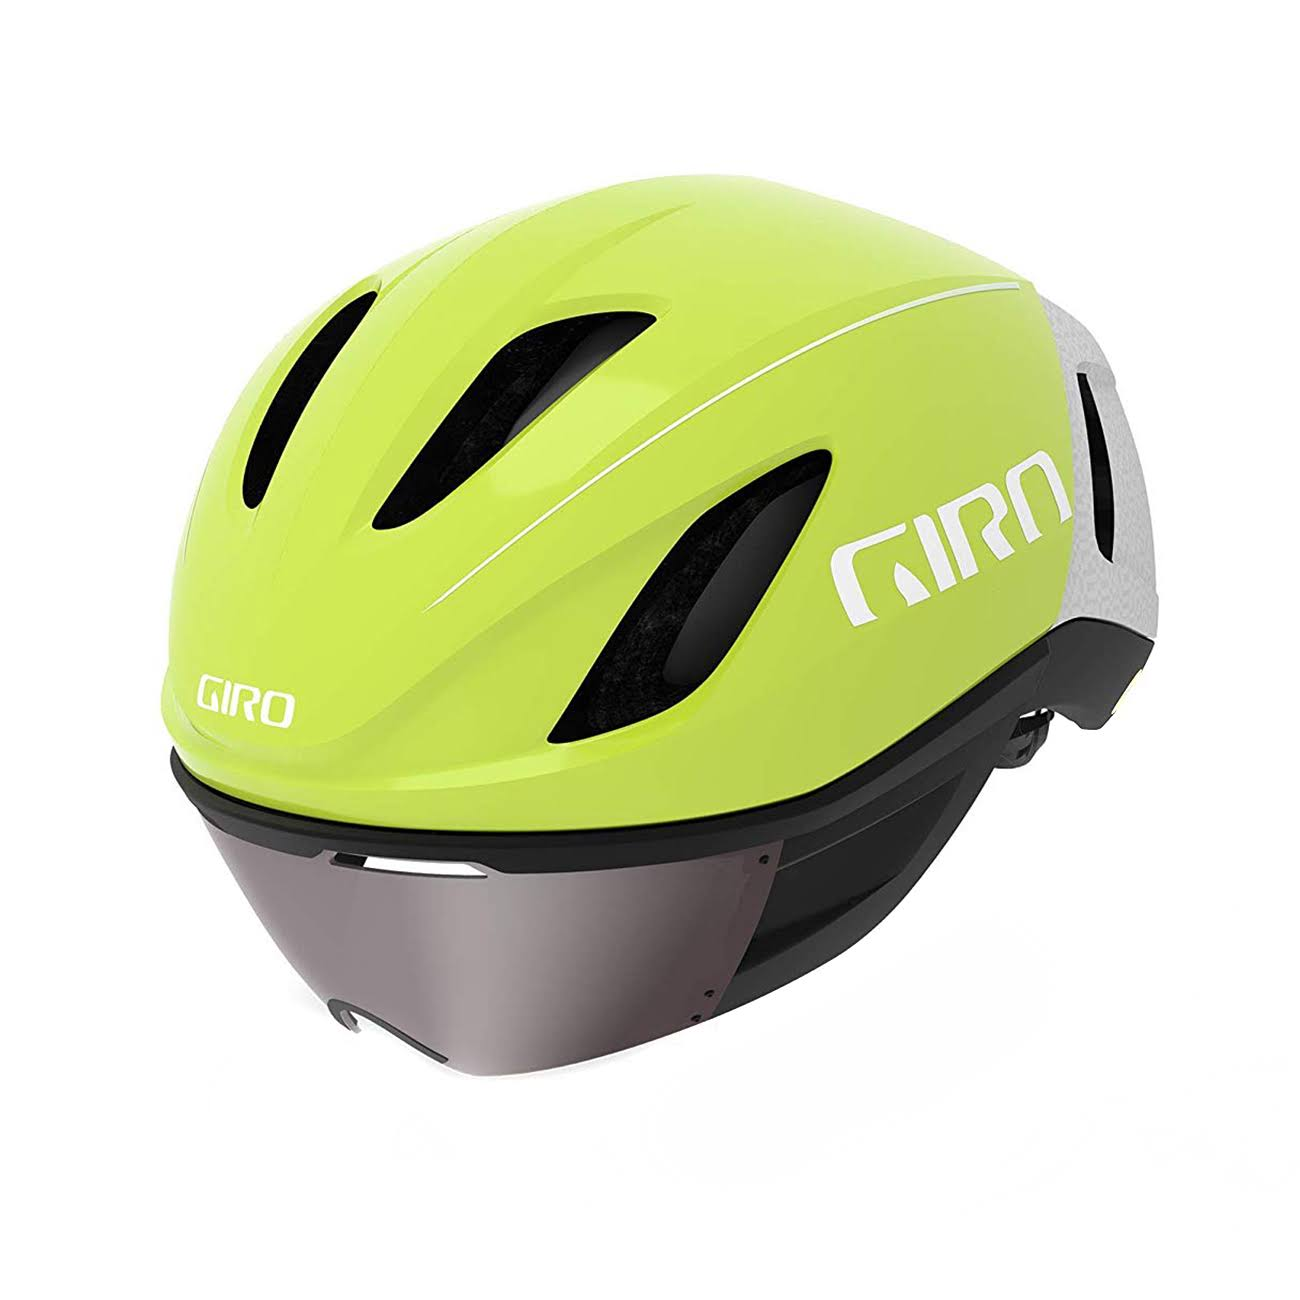 Giro Vanquish MIPS Cycling Helmet - Matte Citron/White, Medium